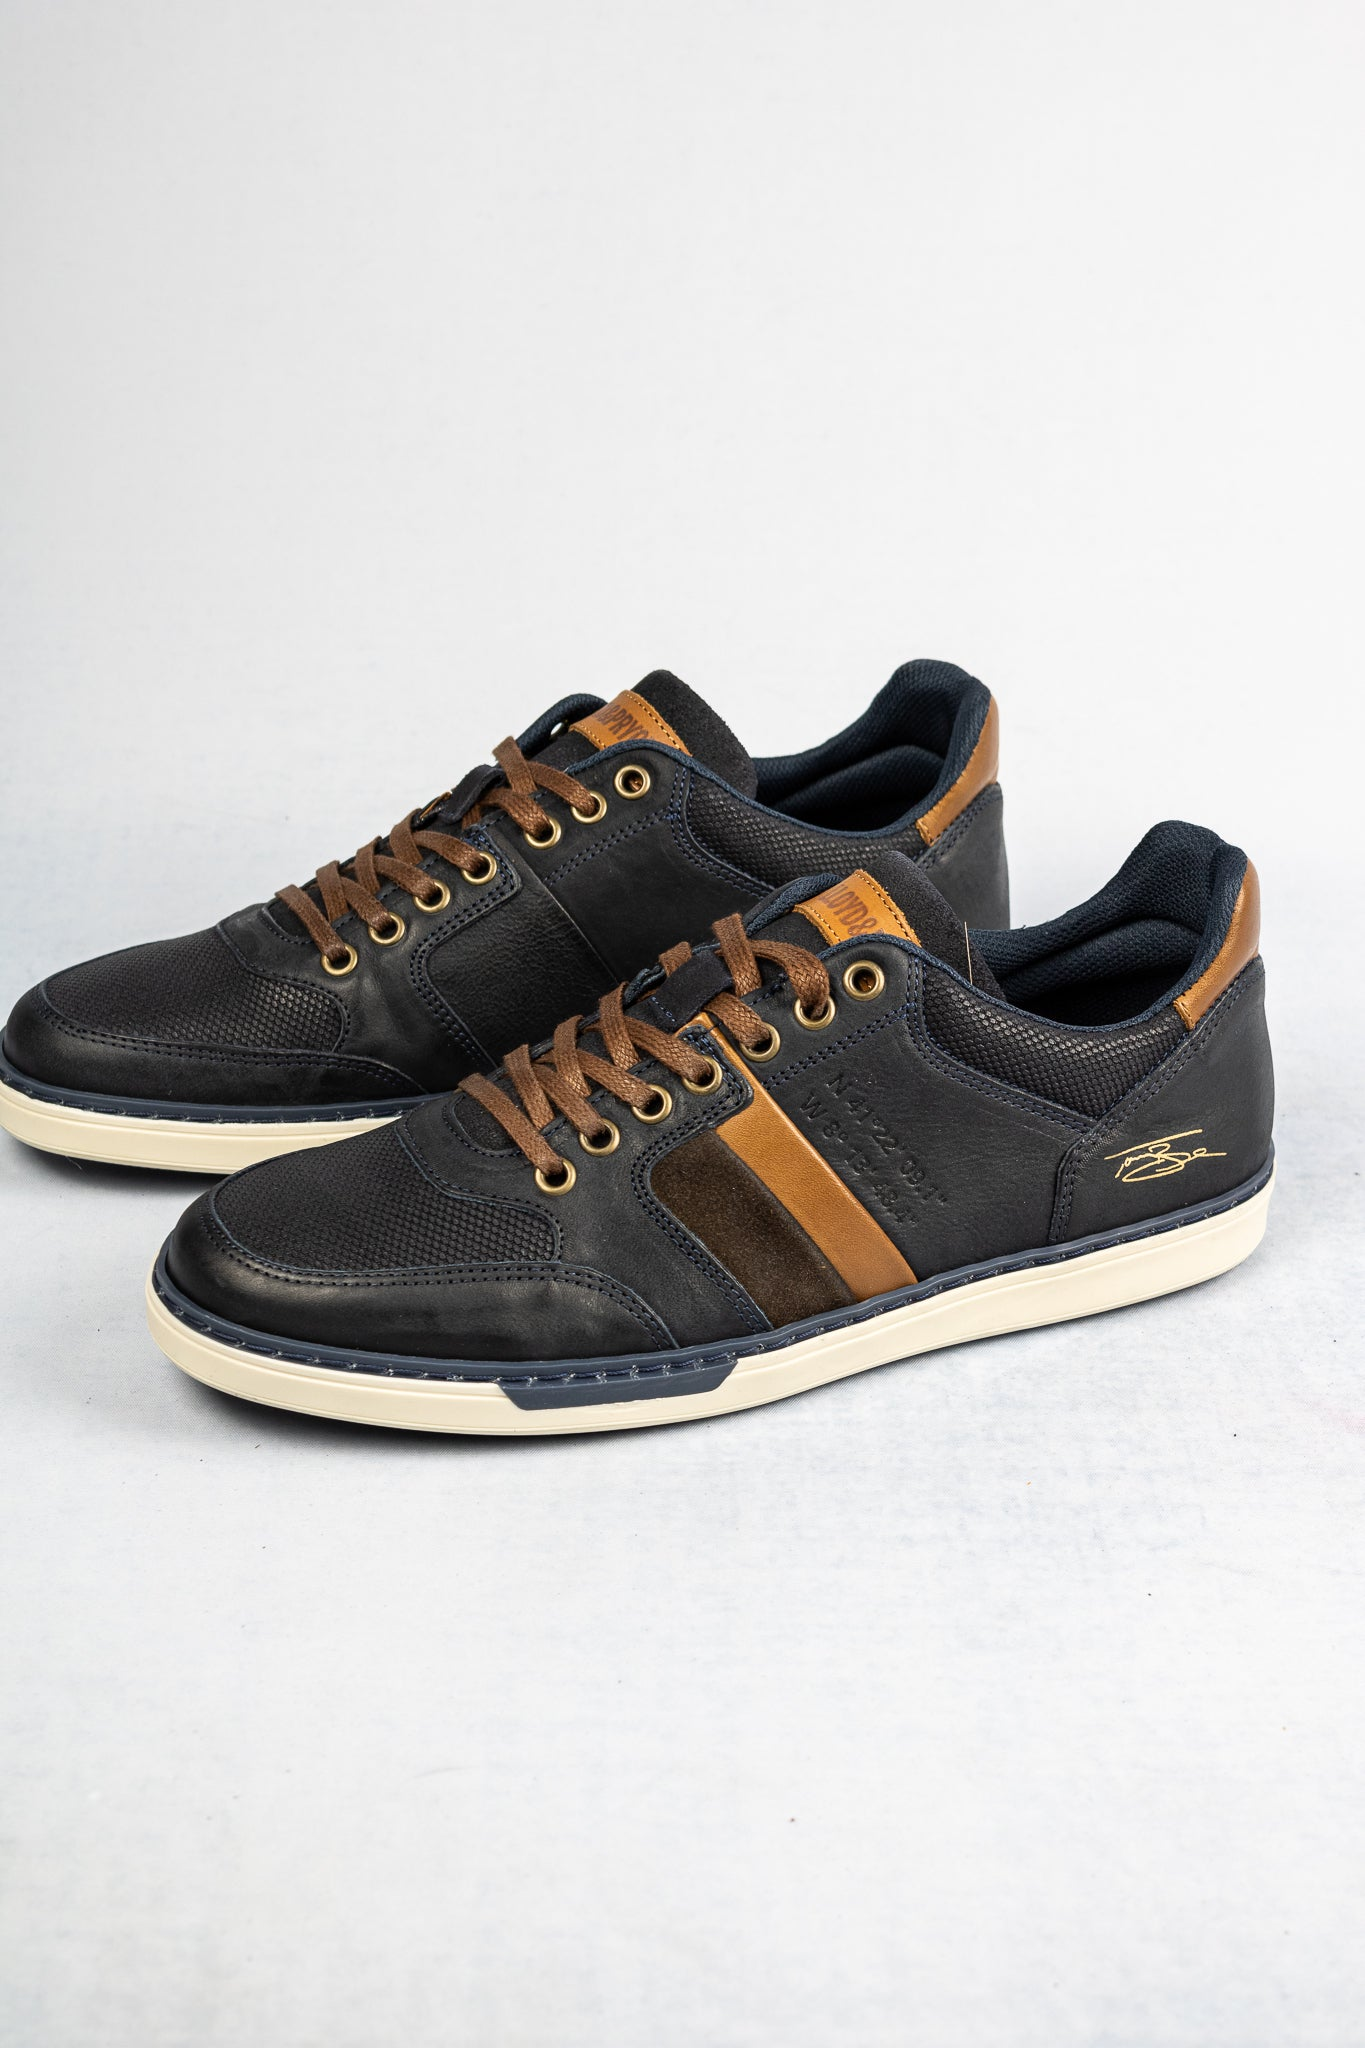 Tommy Bowe Turner Casual Men's Shoe for sale online ireland